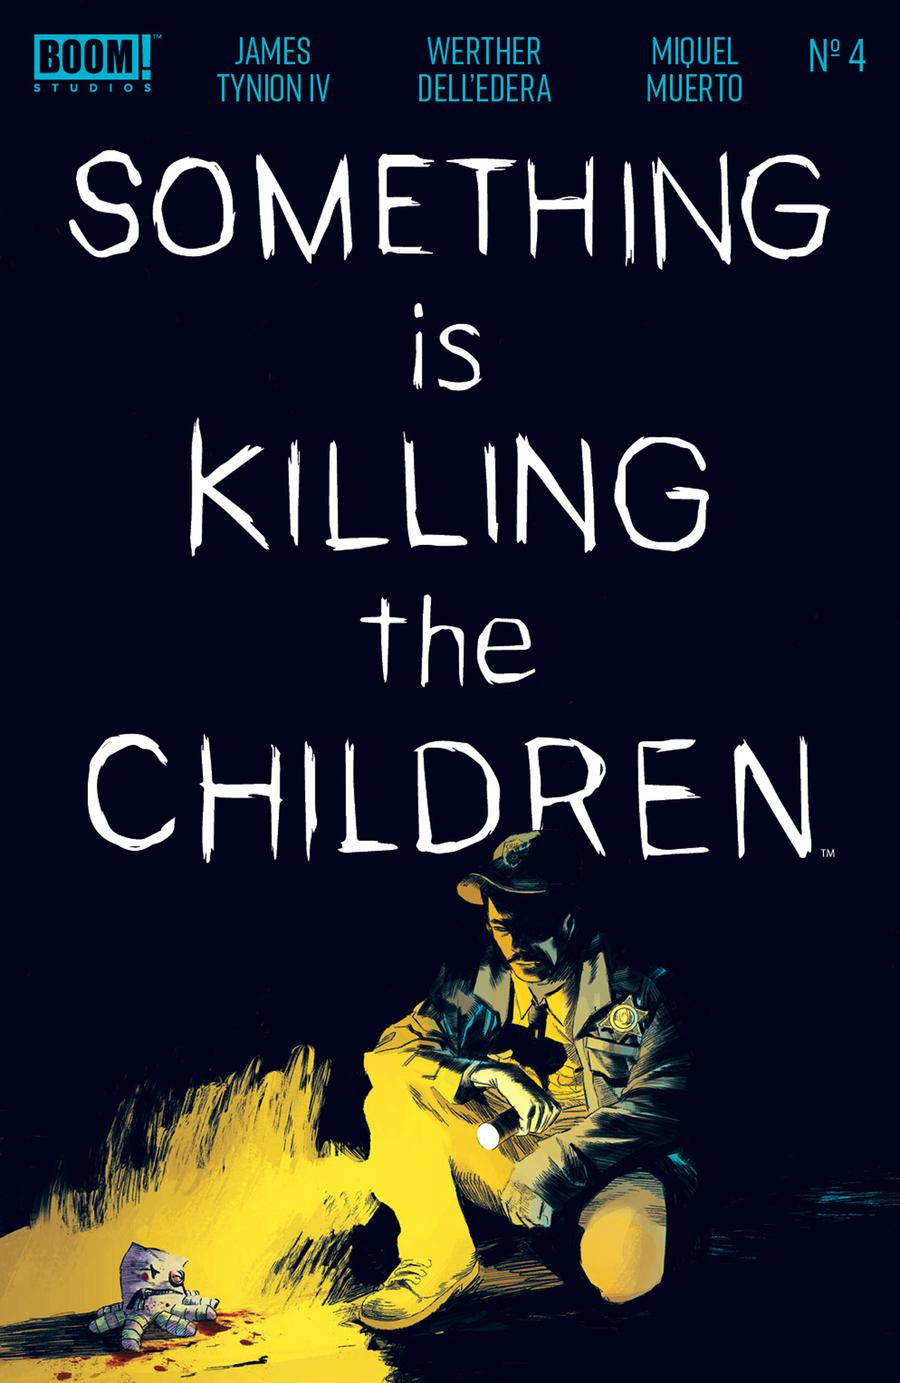 Something Is Killing The Children #4 Cover A 1st Ptg Regular Werther Dell Edera Cover